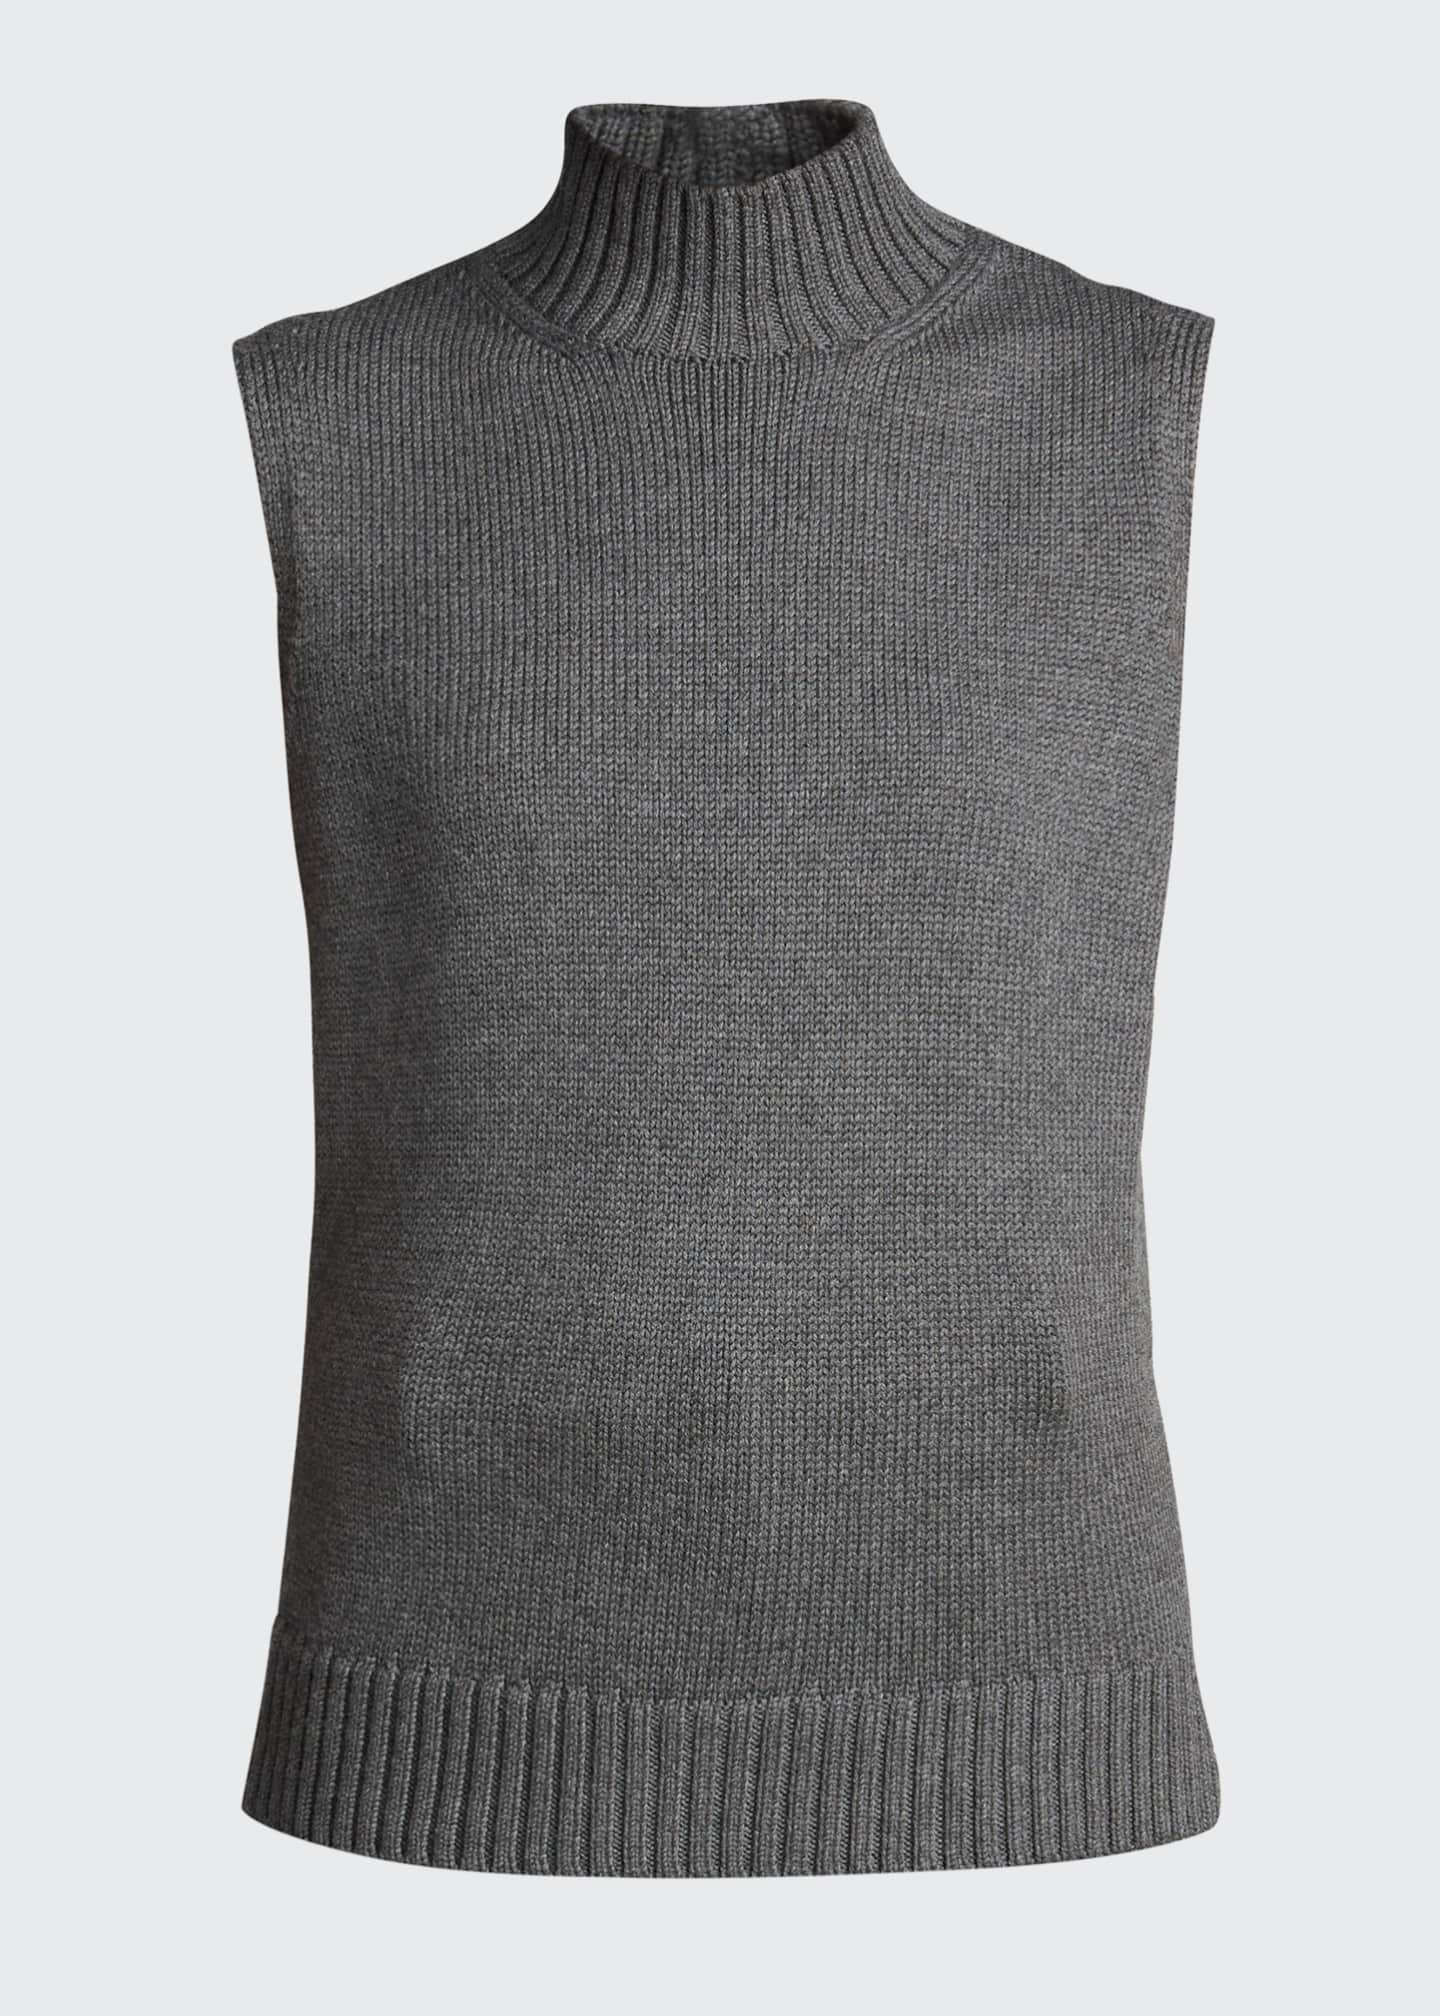 Image 5 of 5: Lofty Italian Virgin Wool Sleeveless Turtleneck Top